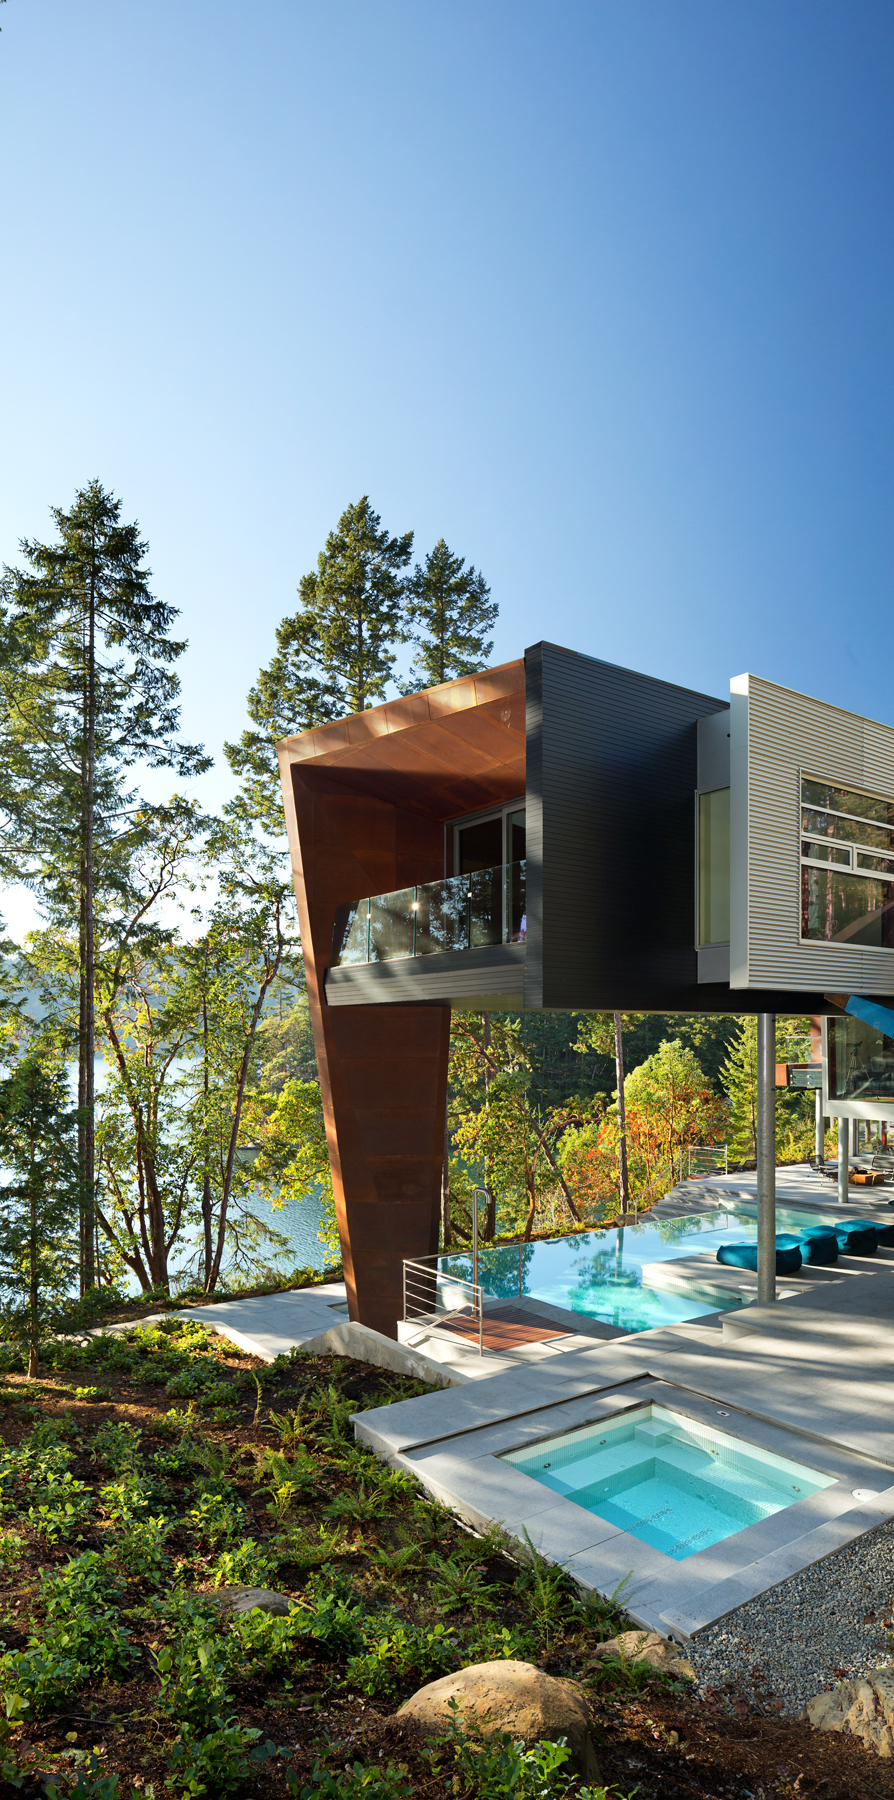 Gulf+Islands+Vancouver+lake+house